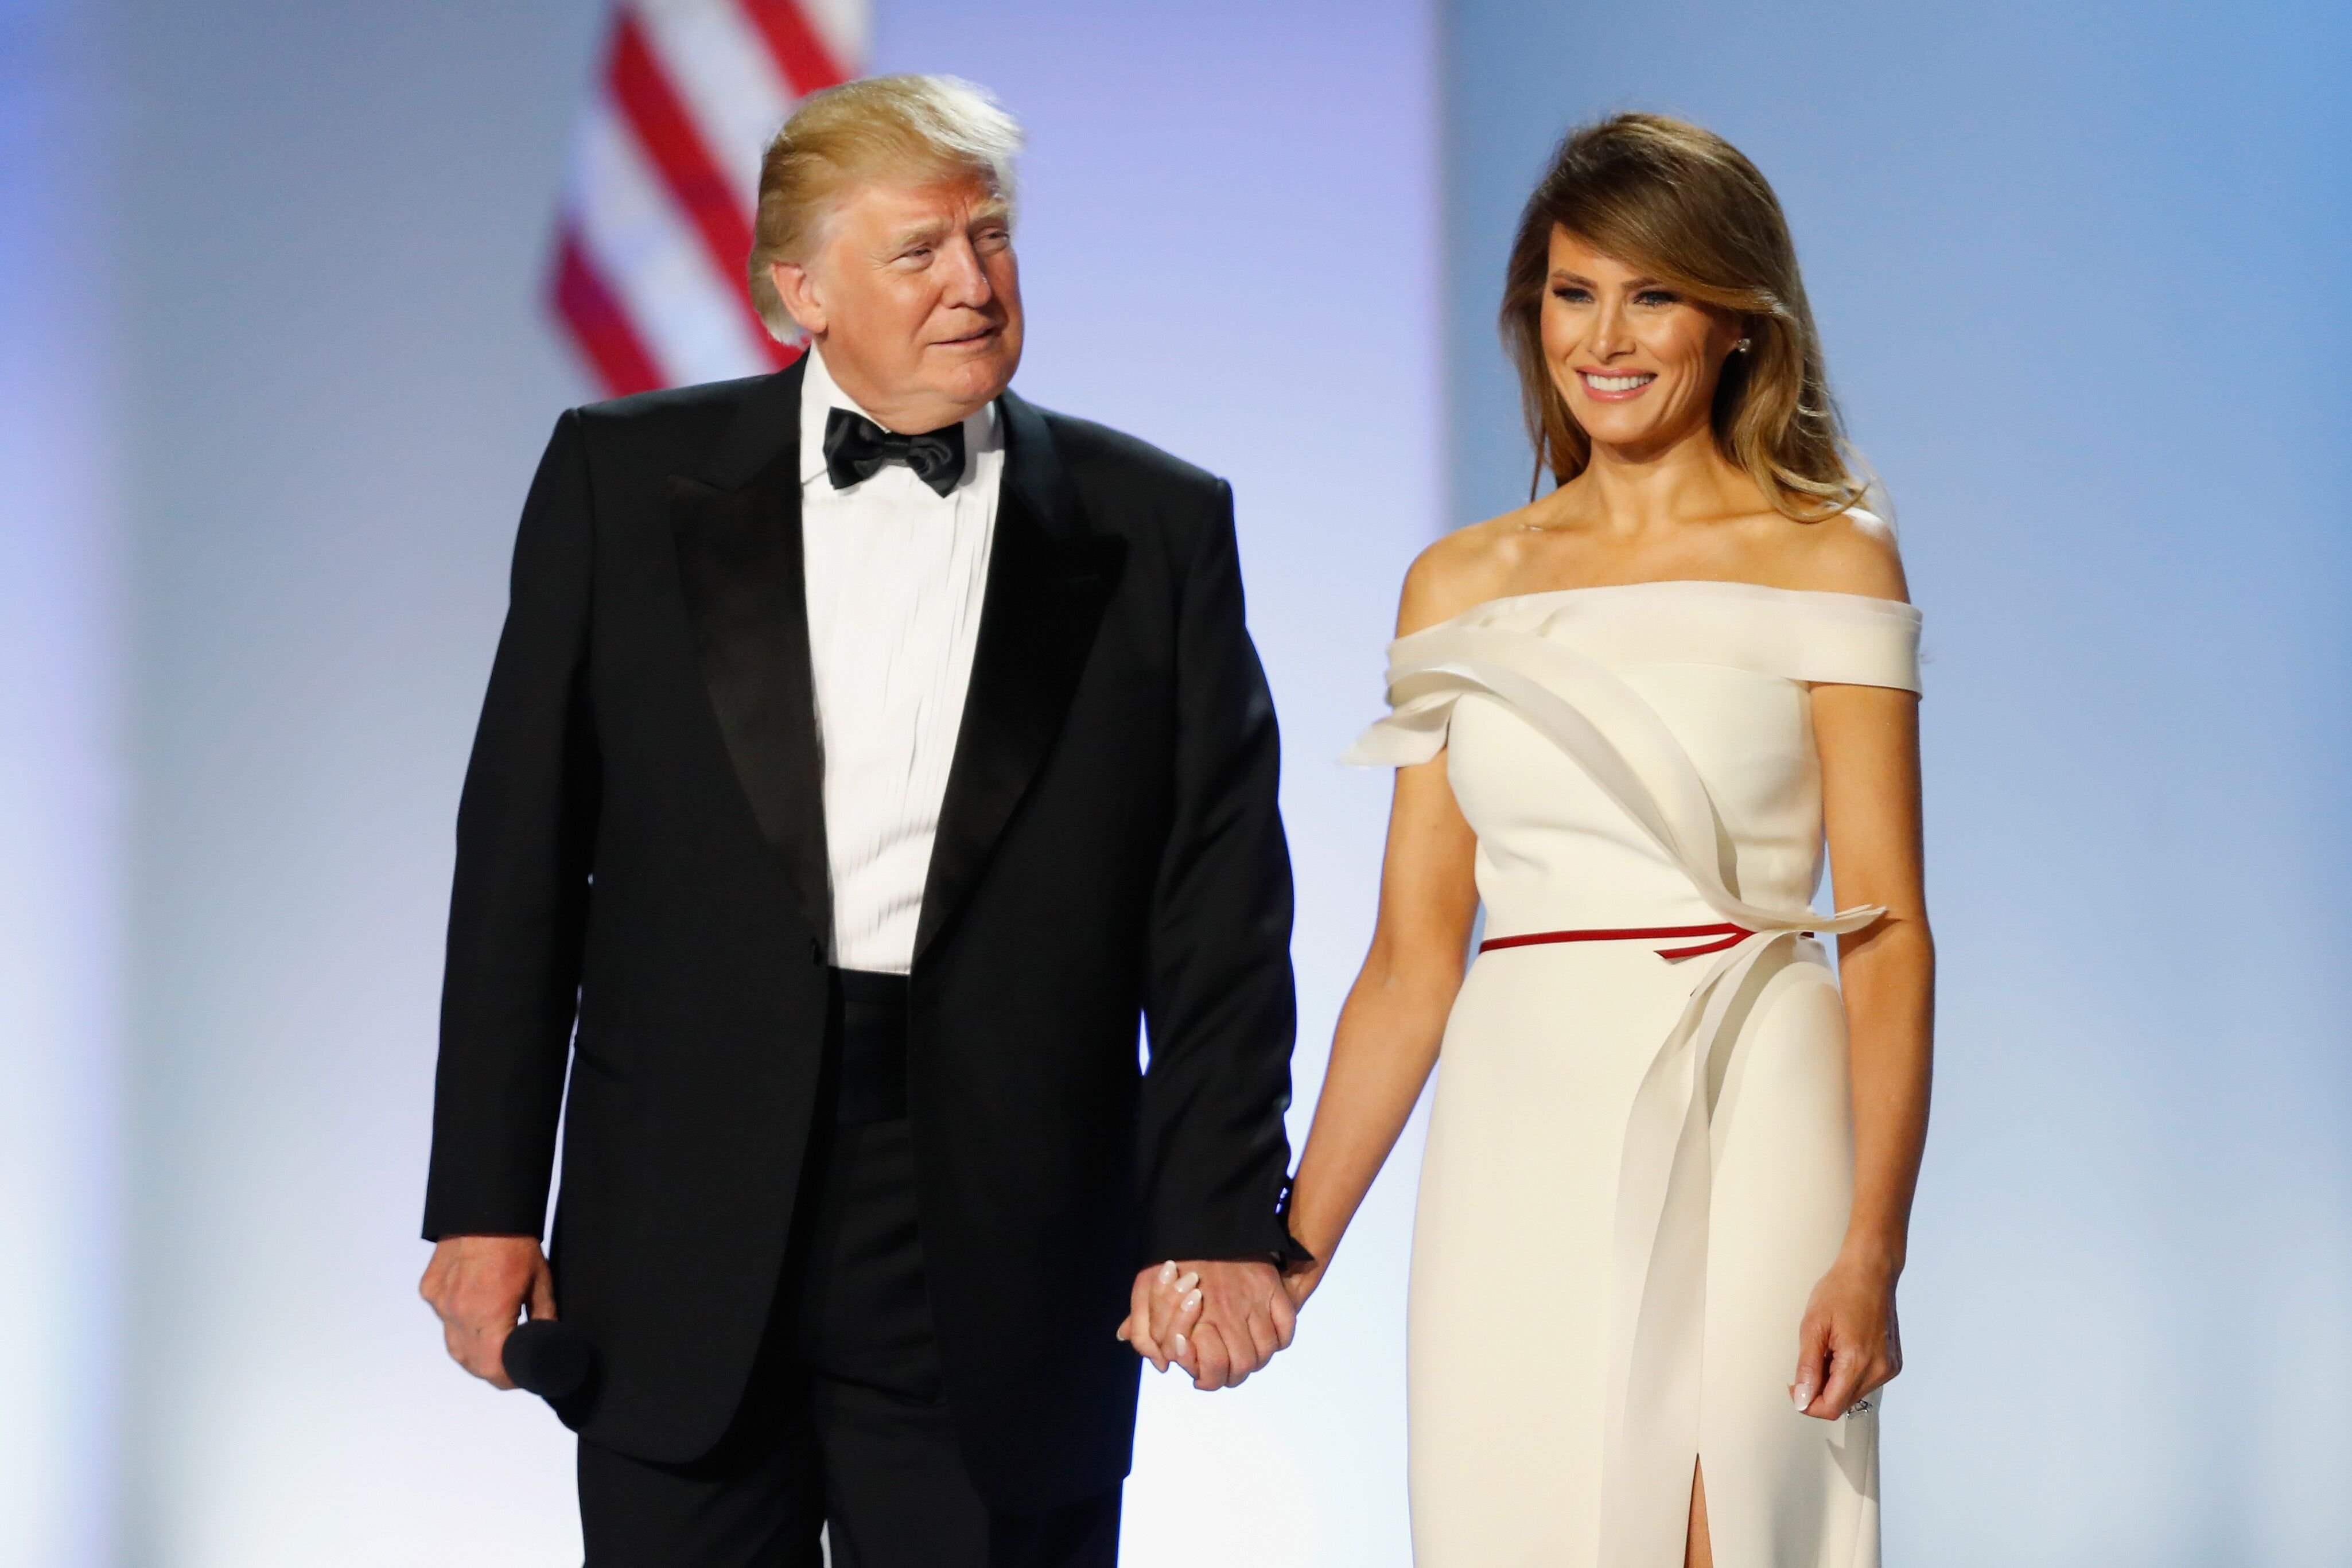 President Donald Trump and first lady Melania Trump at the Freedom Ball on January 20, 2017 in Washington, D.C. | Source: Getty Images